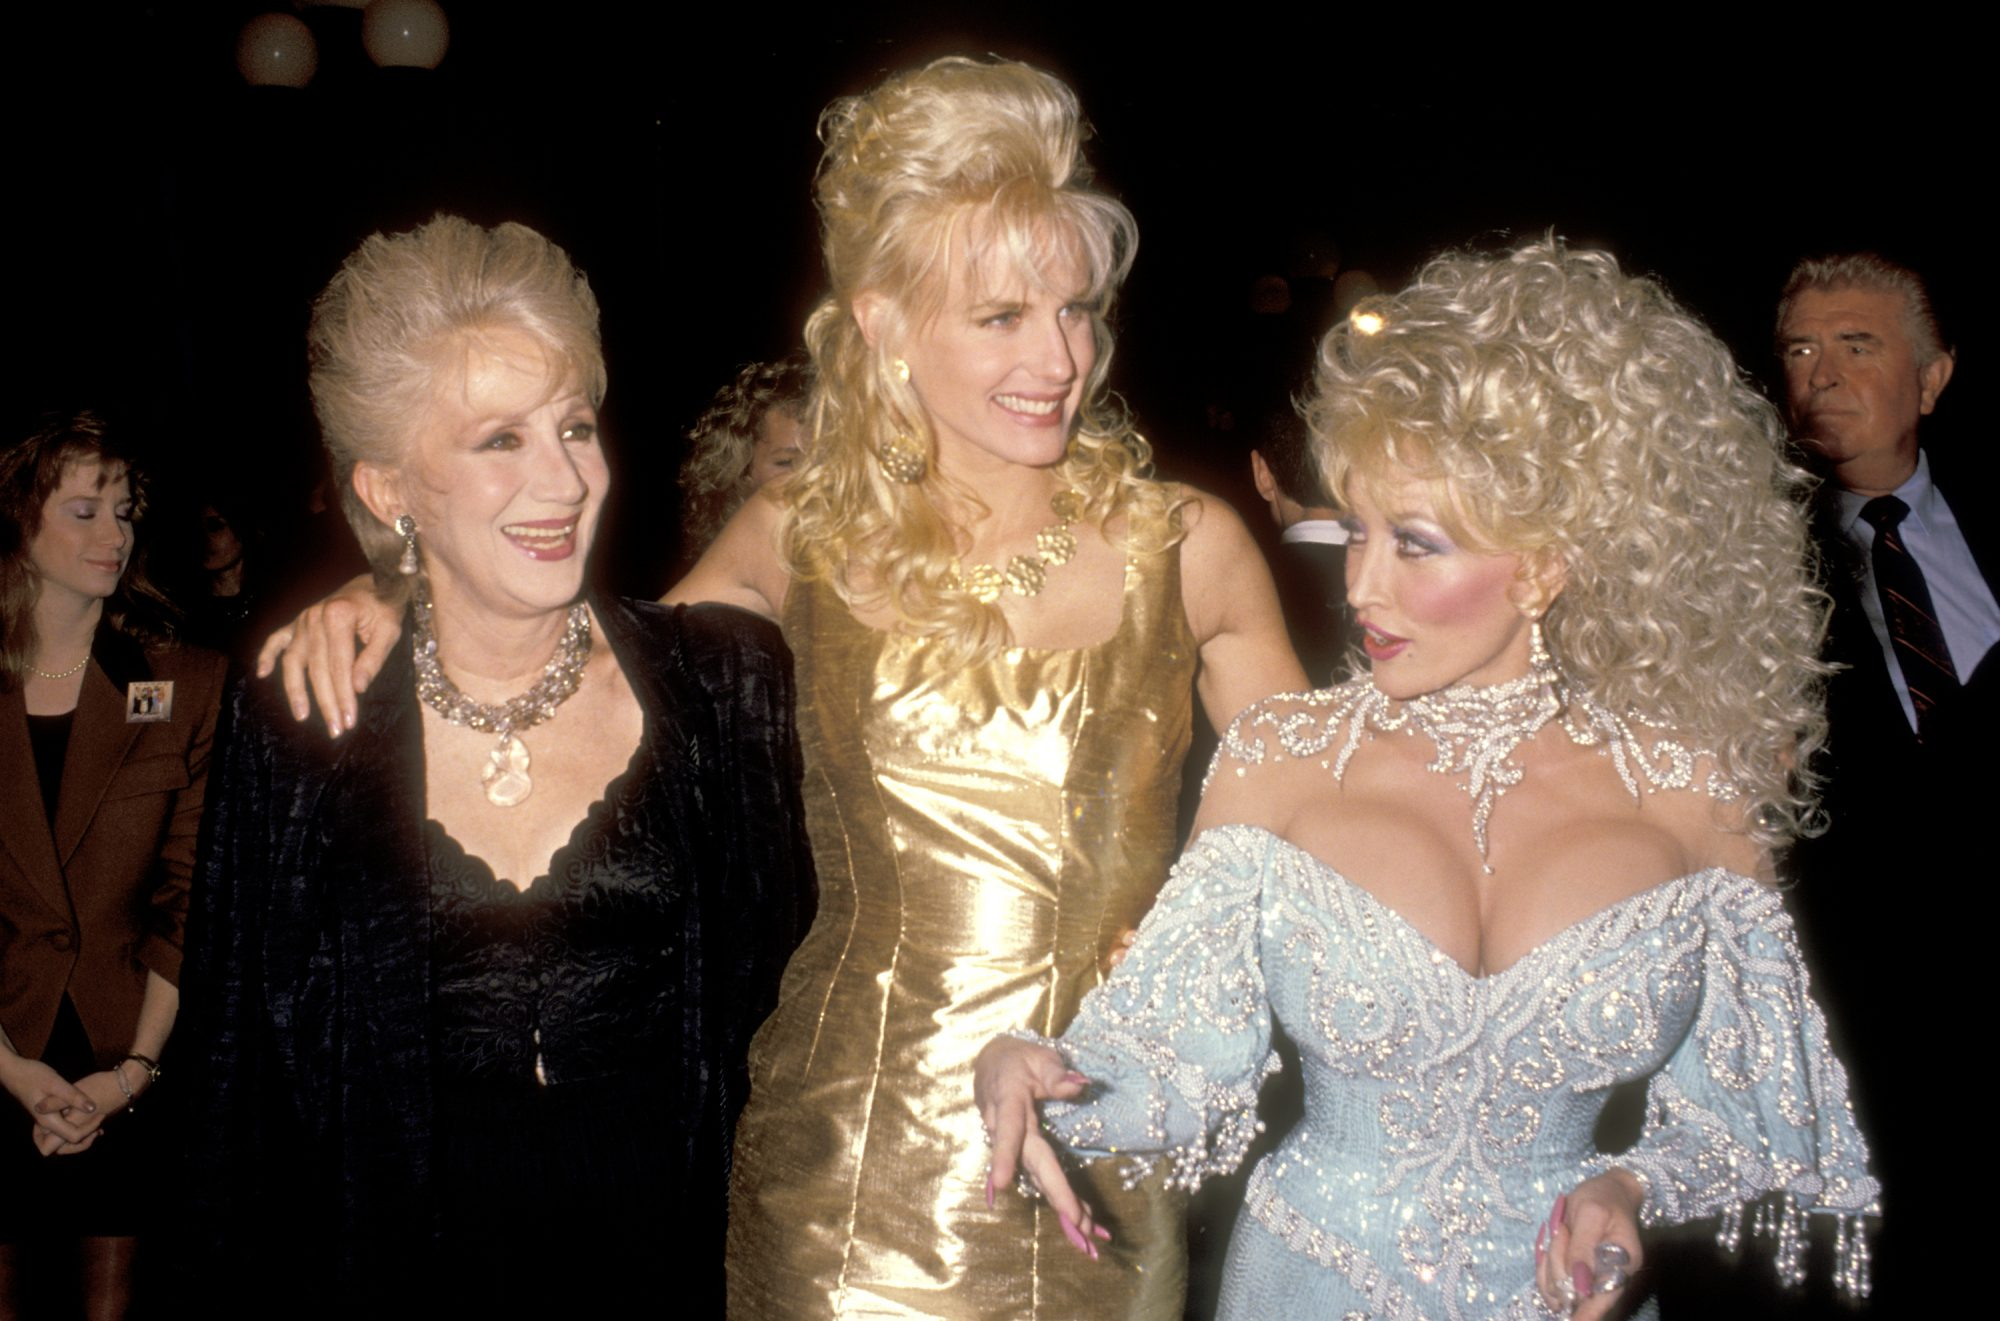 Olympia Dukakis, Daryl Hannah, and Dolly Parton at the Steel Magnolias Movie Premiere